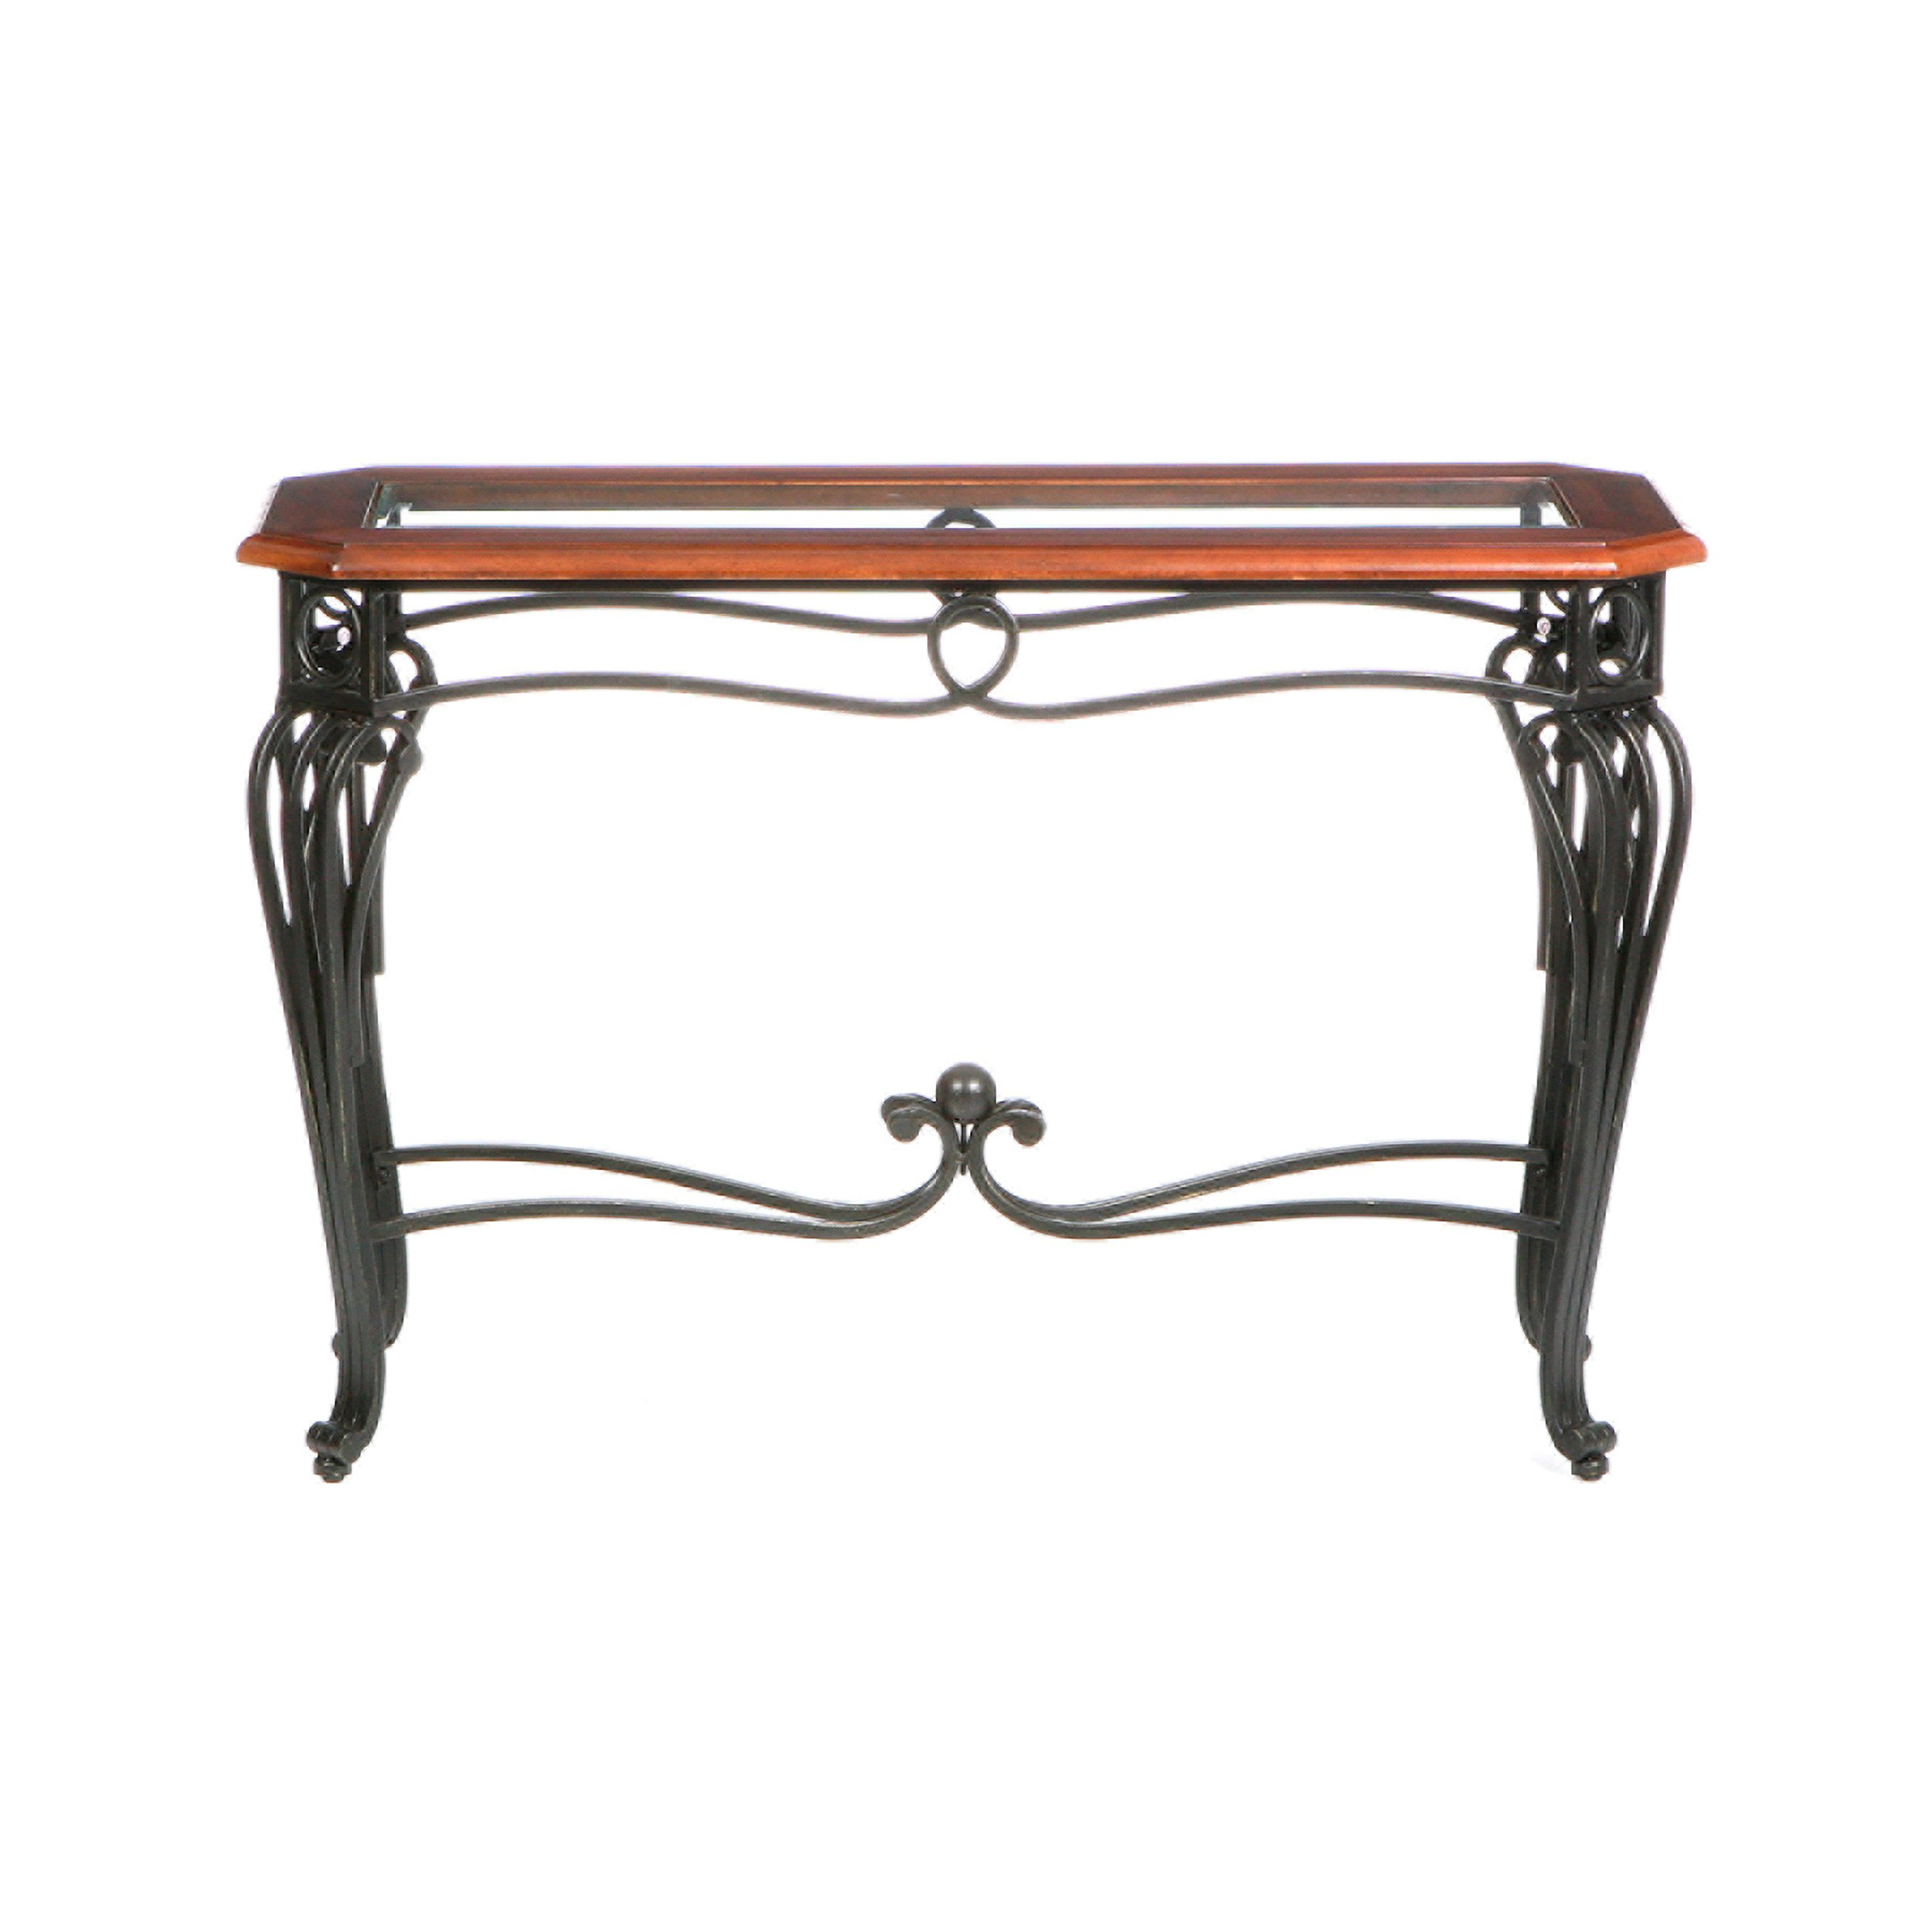 Prentice Sofa Console Table - Dark Cherry w/ Black Metal Frame - Glass Top by Southern Enterprises, Inc.